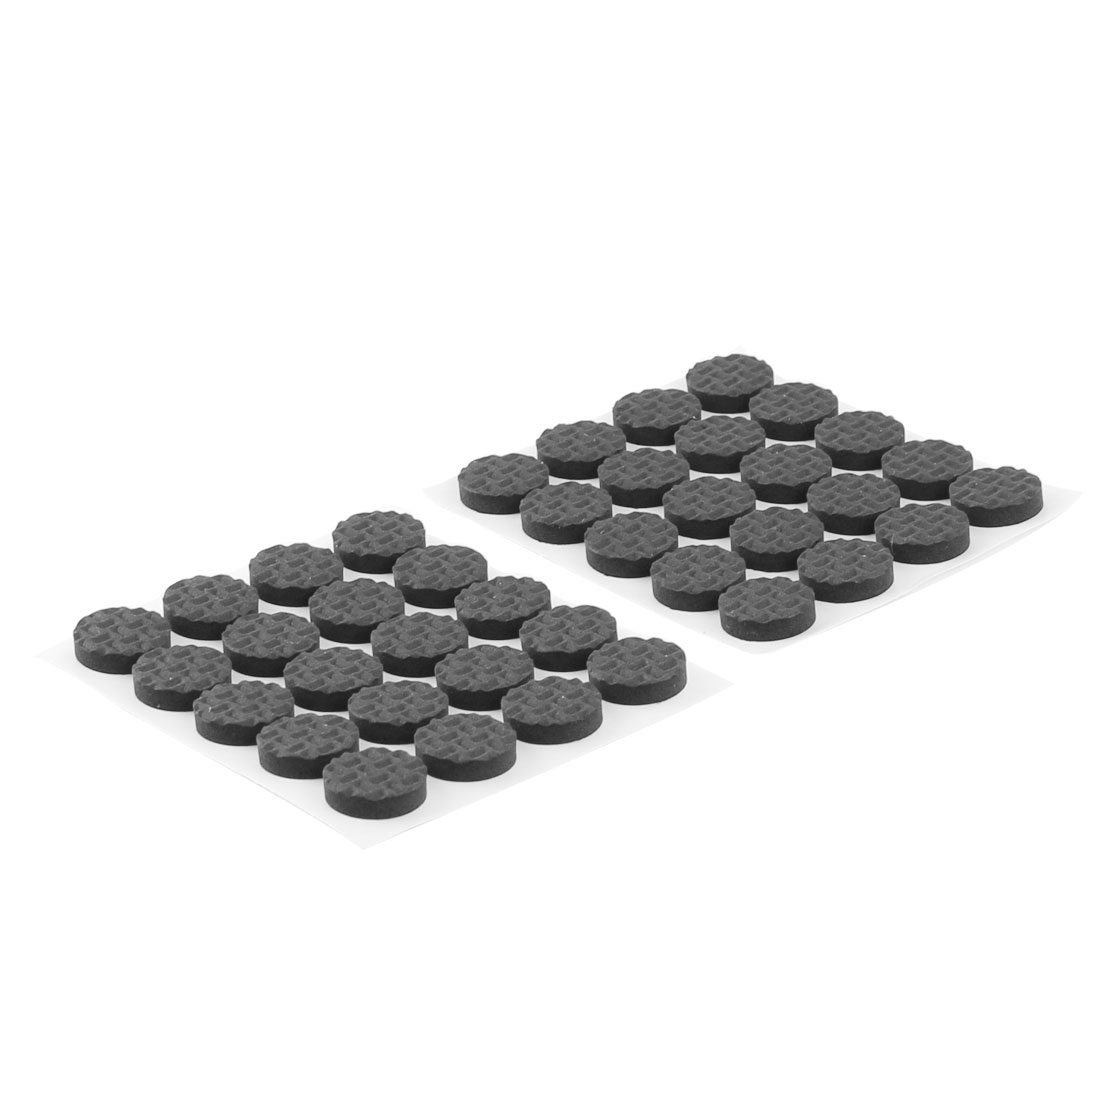 Table Chair Legs Round EVA Self Stick Protect Floor Furniture Foot Pads Black 15mm Dia 40pcs